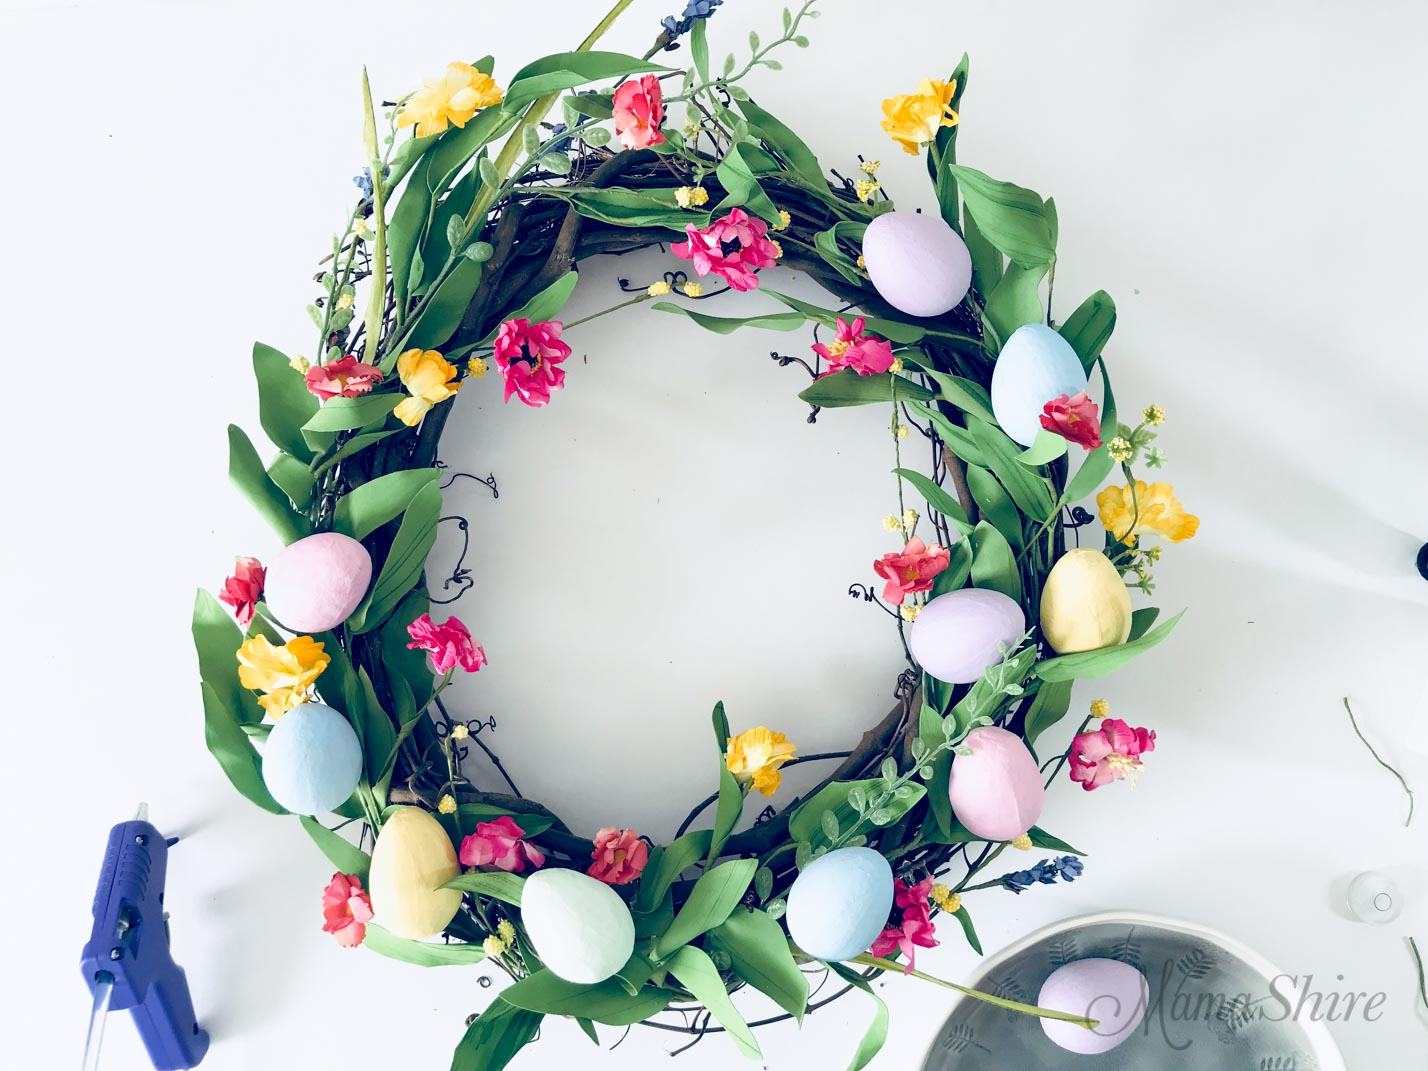 Placing the painted eggs on the Easter Wreath.